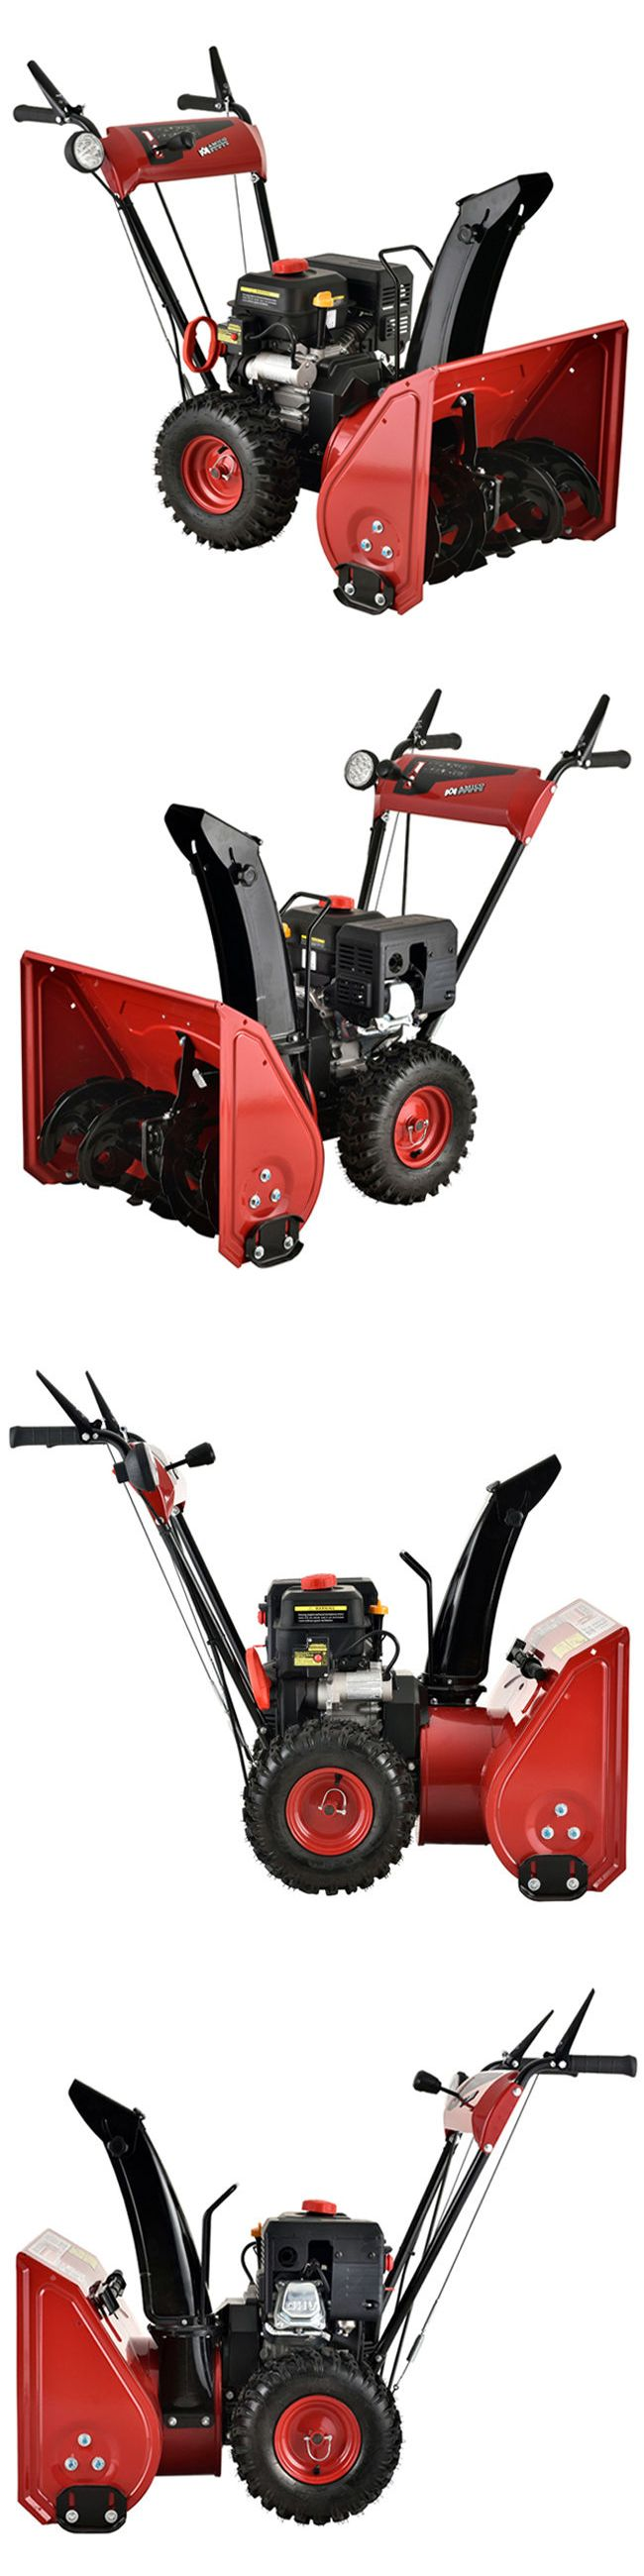 Snow Blowers 42230: Amico Power 24 Inch 212Cc Two-Stage Electric Start Gas Snow Blower Thrower -> BUY IT NOW ONLY: $799 on eBay!